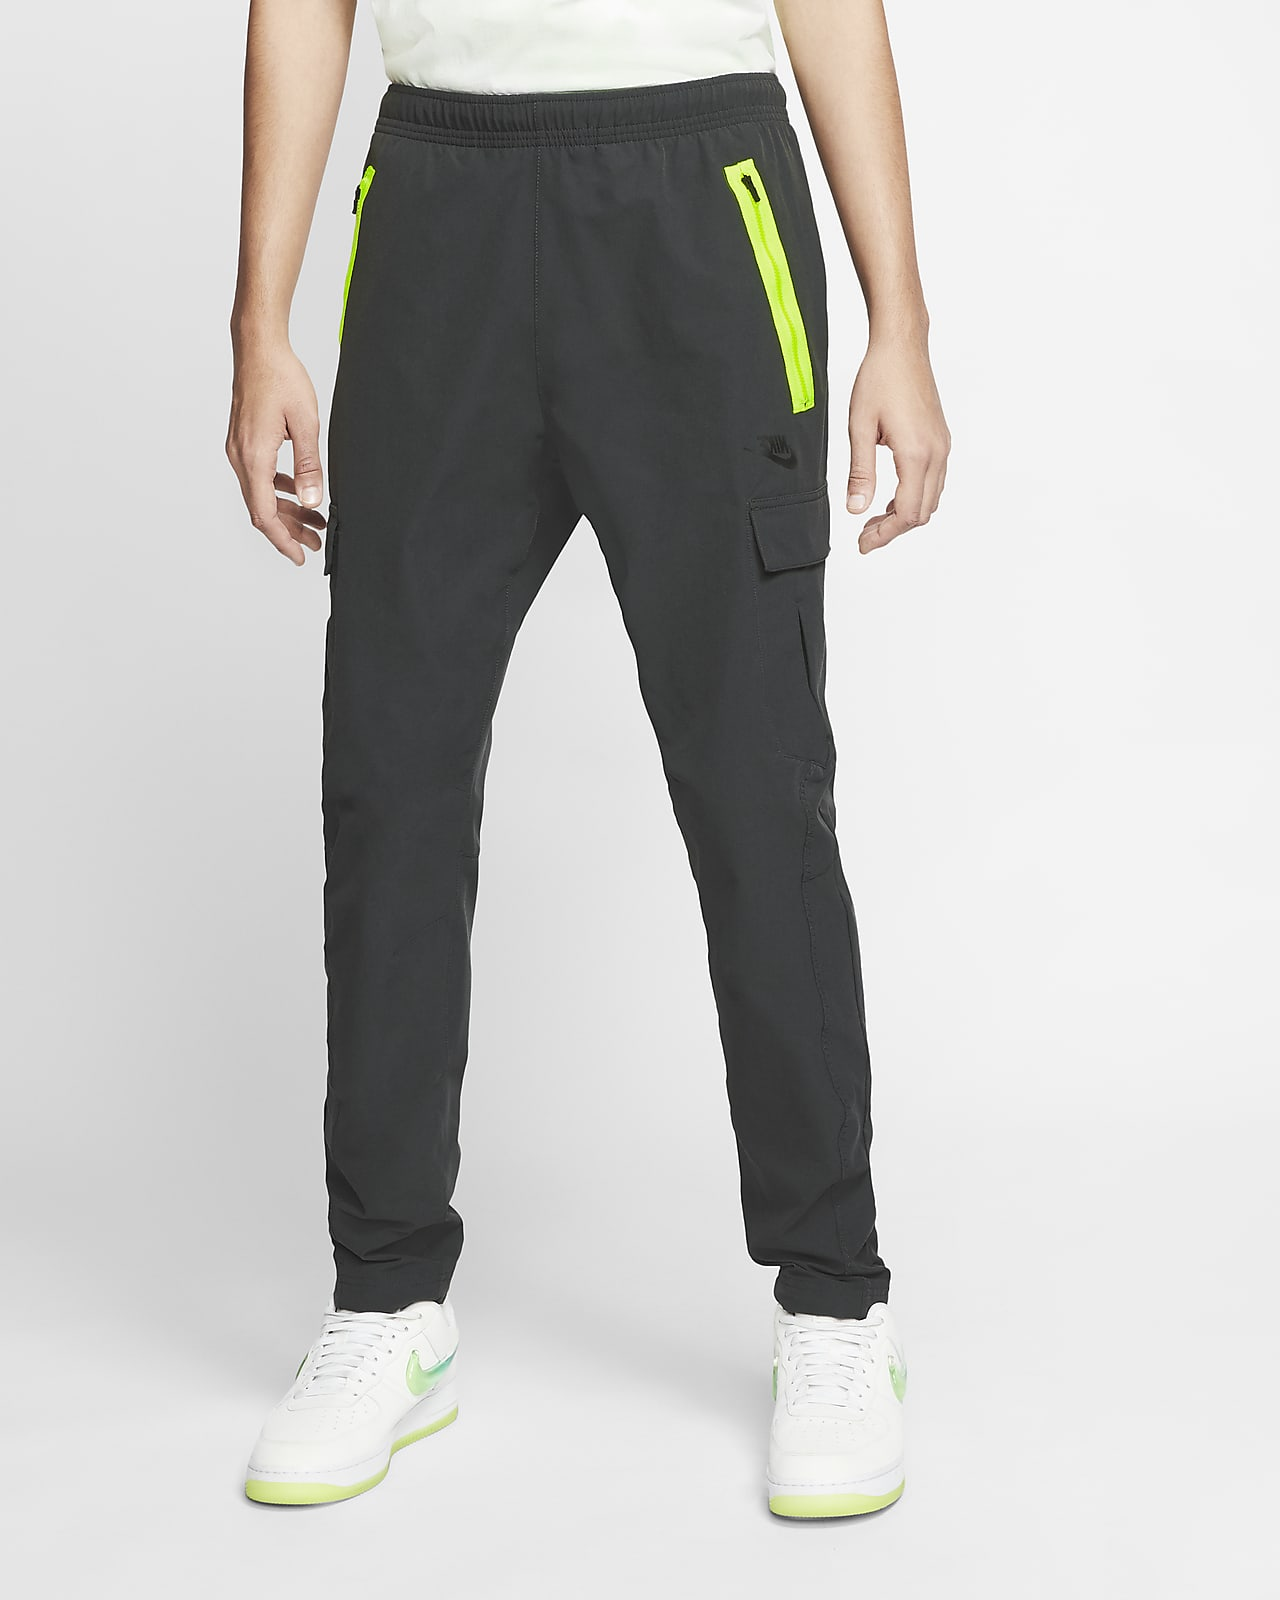 Nike Sportswear Men's Woven Cargo Trousers